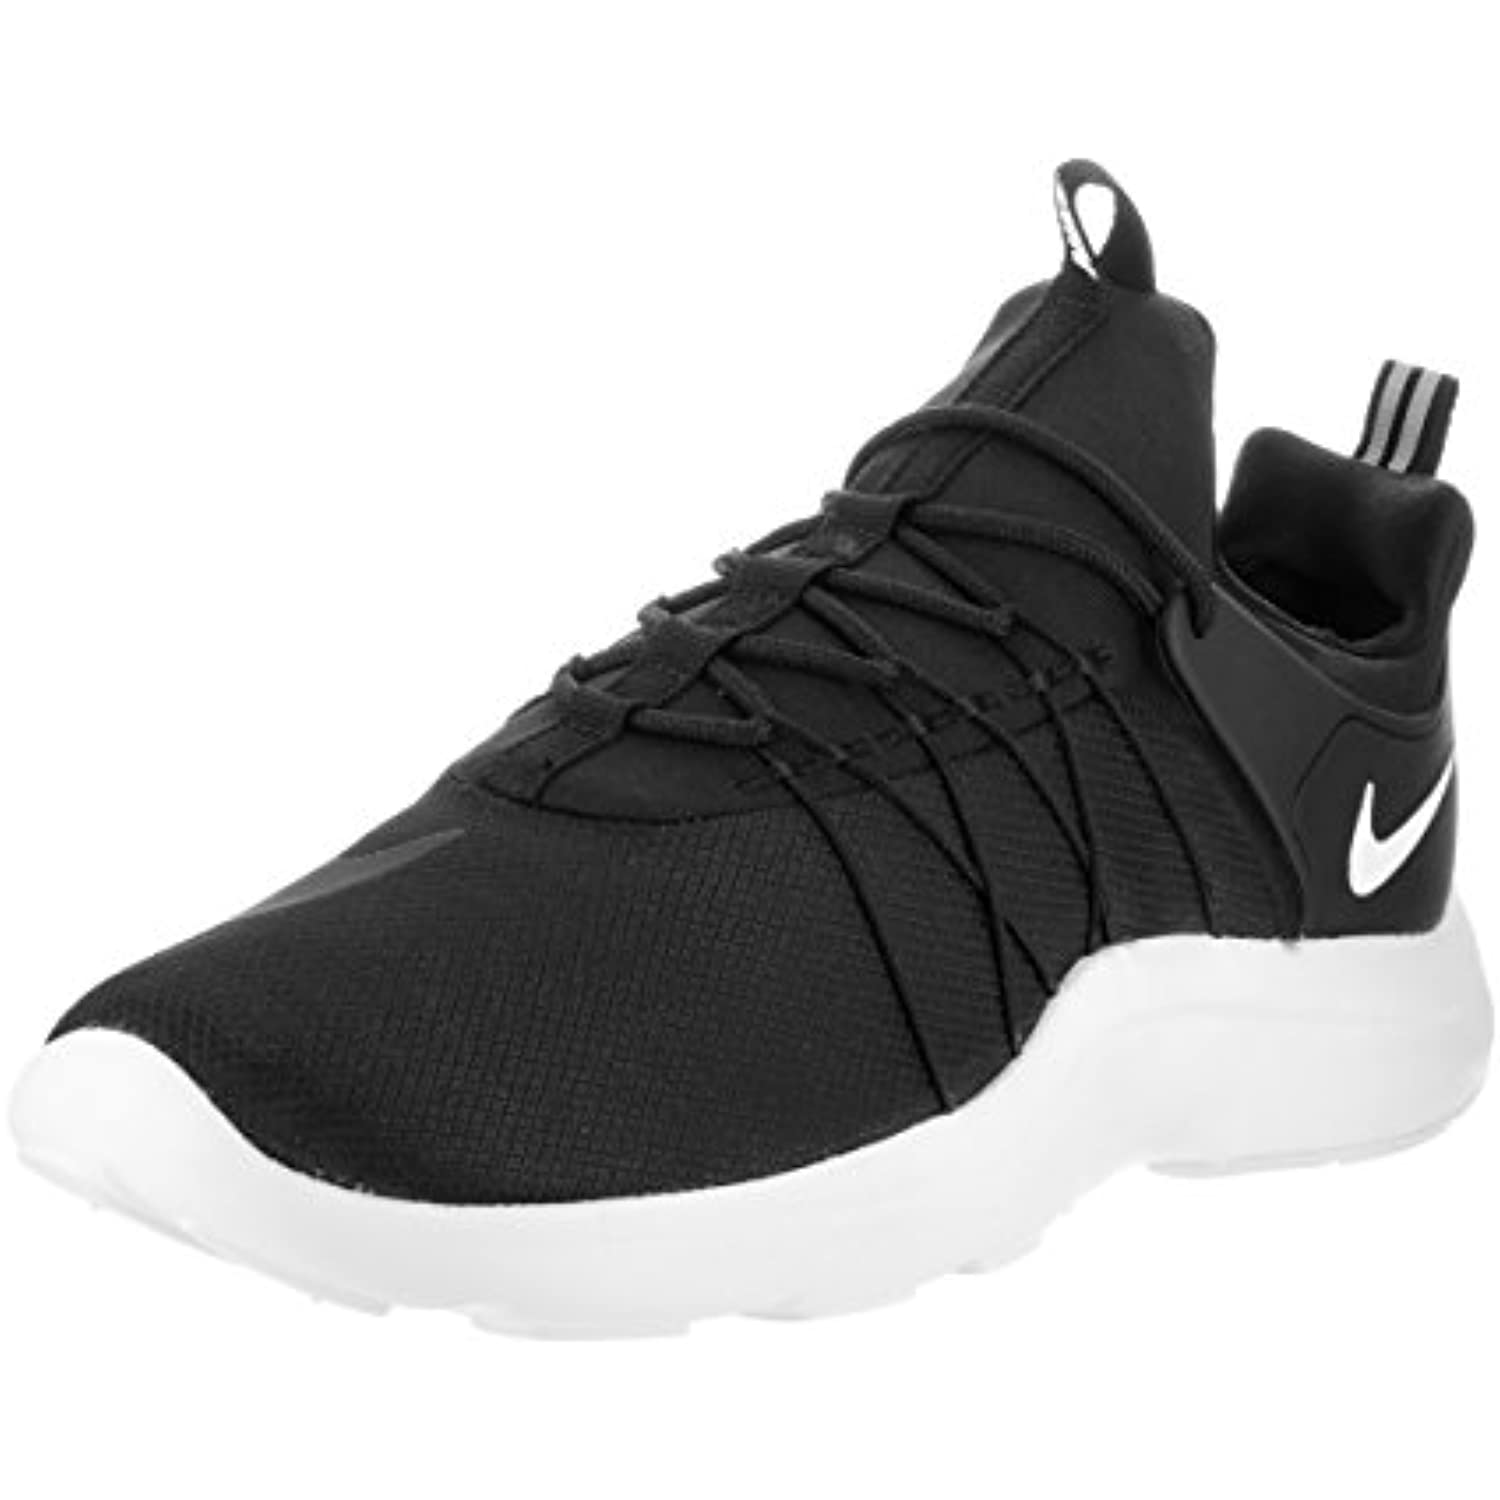 NIKE Chaussures Darwin, Chaussures NIKE de Running Homme - B018Z0SPEY - 11f34d